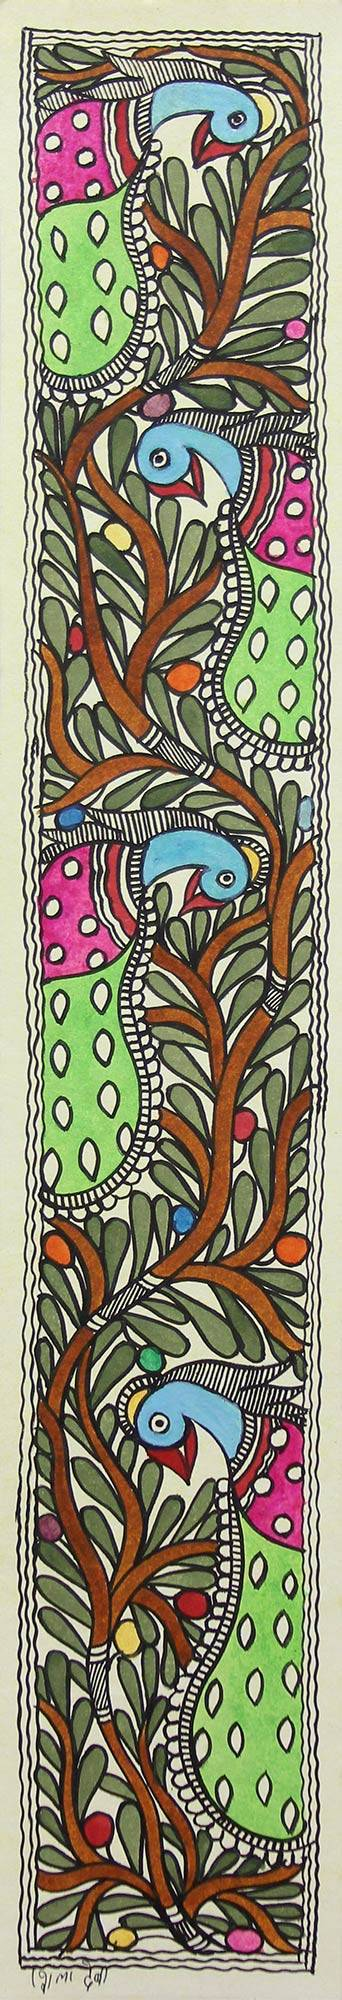 Indian Peacocks Madhubani Painting on Handmade Paper